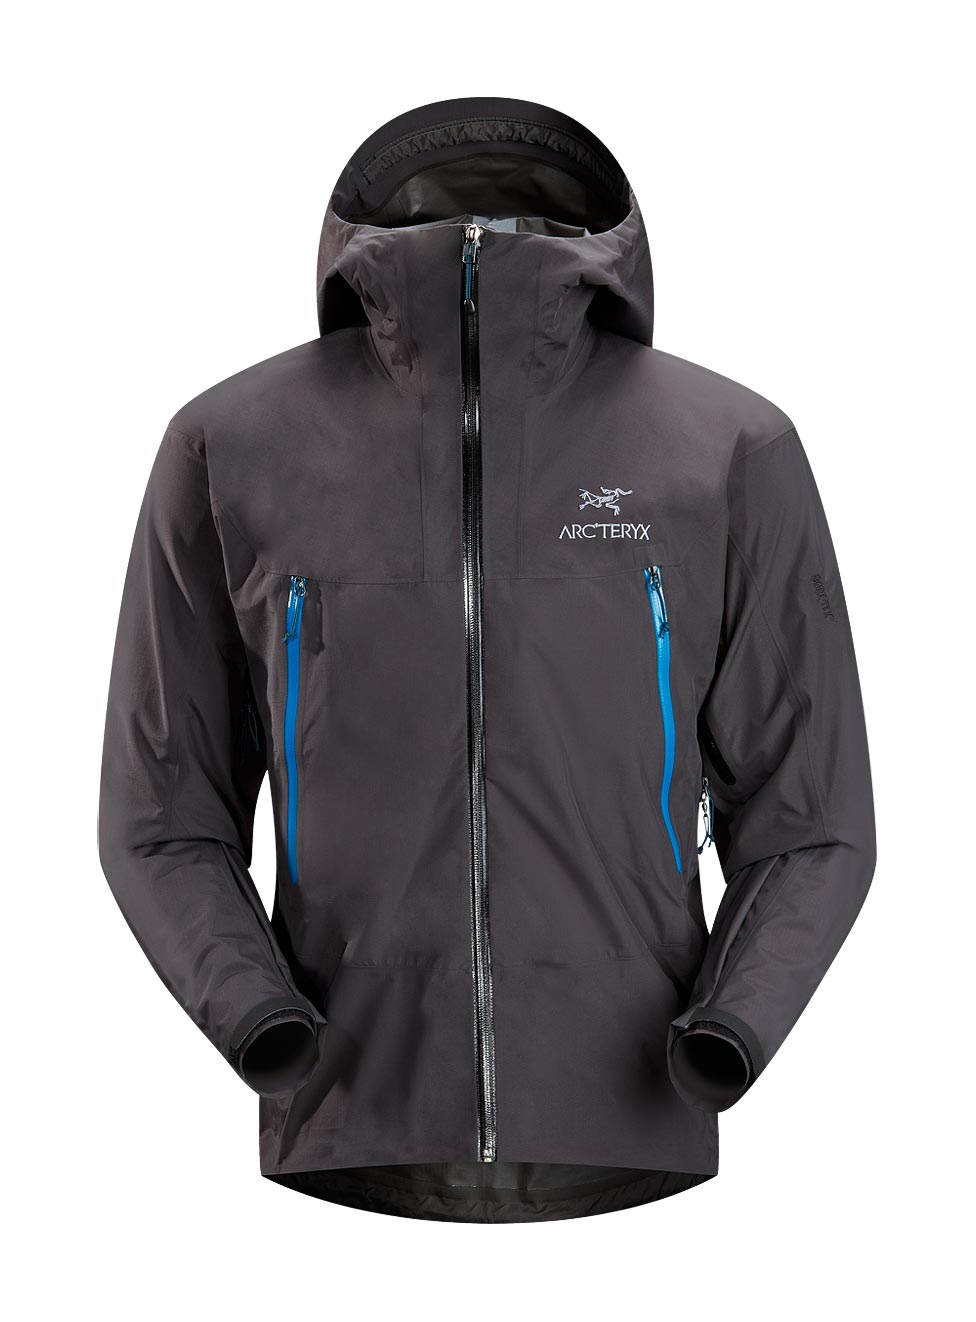 Arcteryx Carbon Copy II Alpha SL Jacket